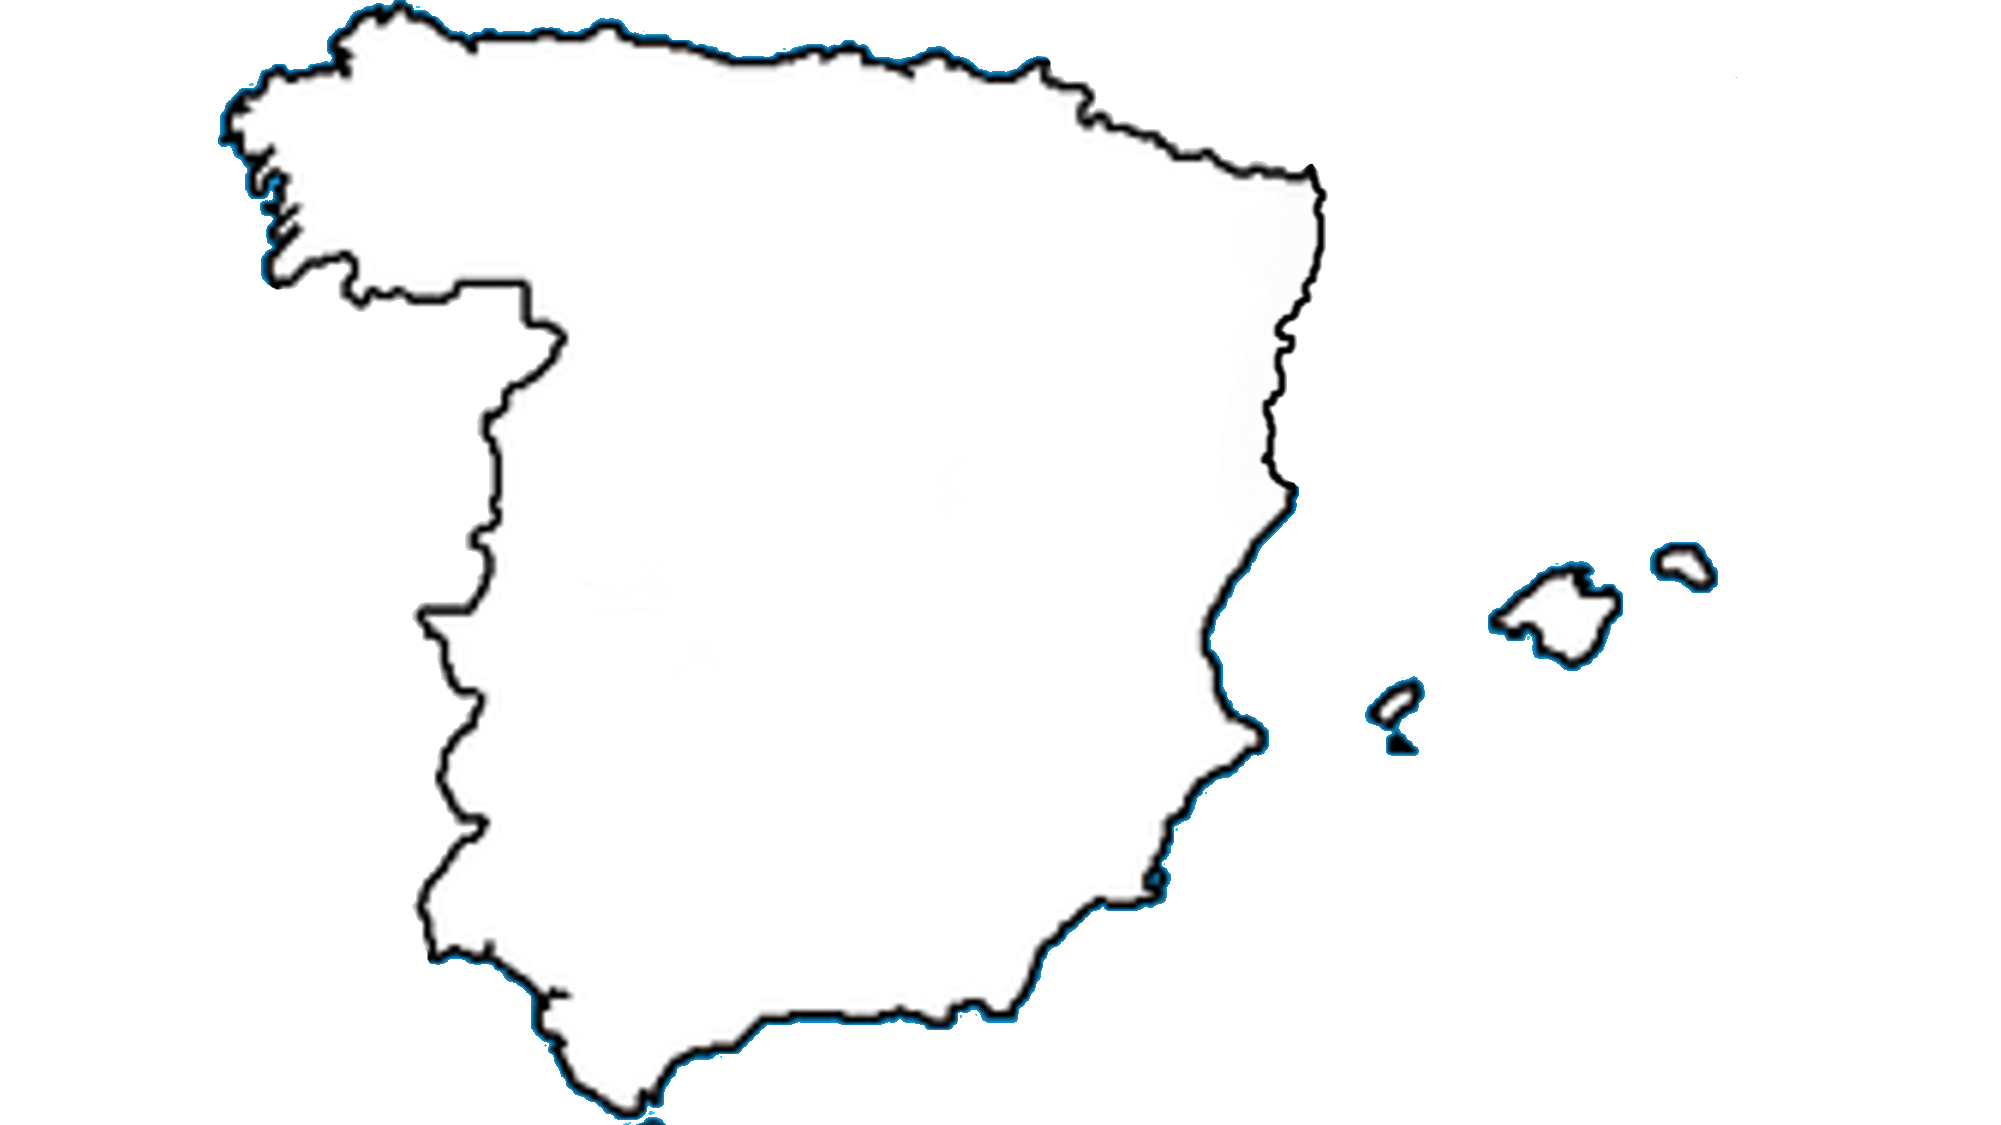 Map Of Spain And Catalonia.File Blank Map Of Spain Without Catalonia Png Wikimedia Commons